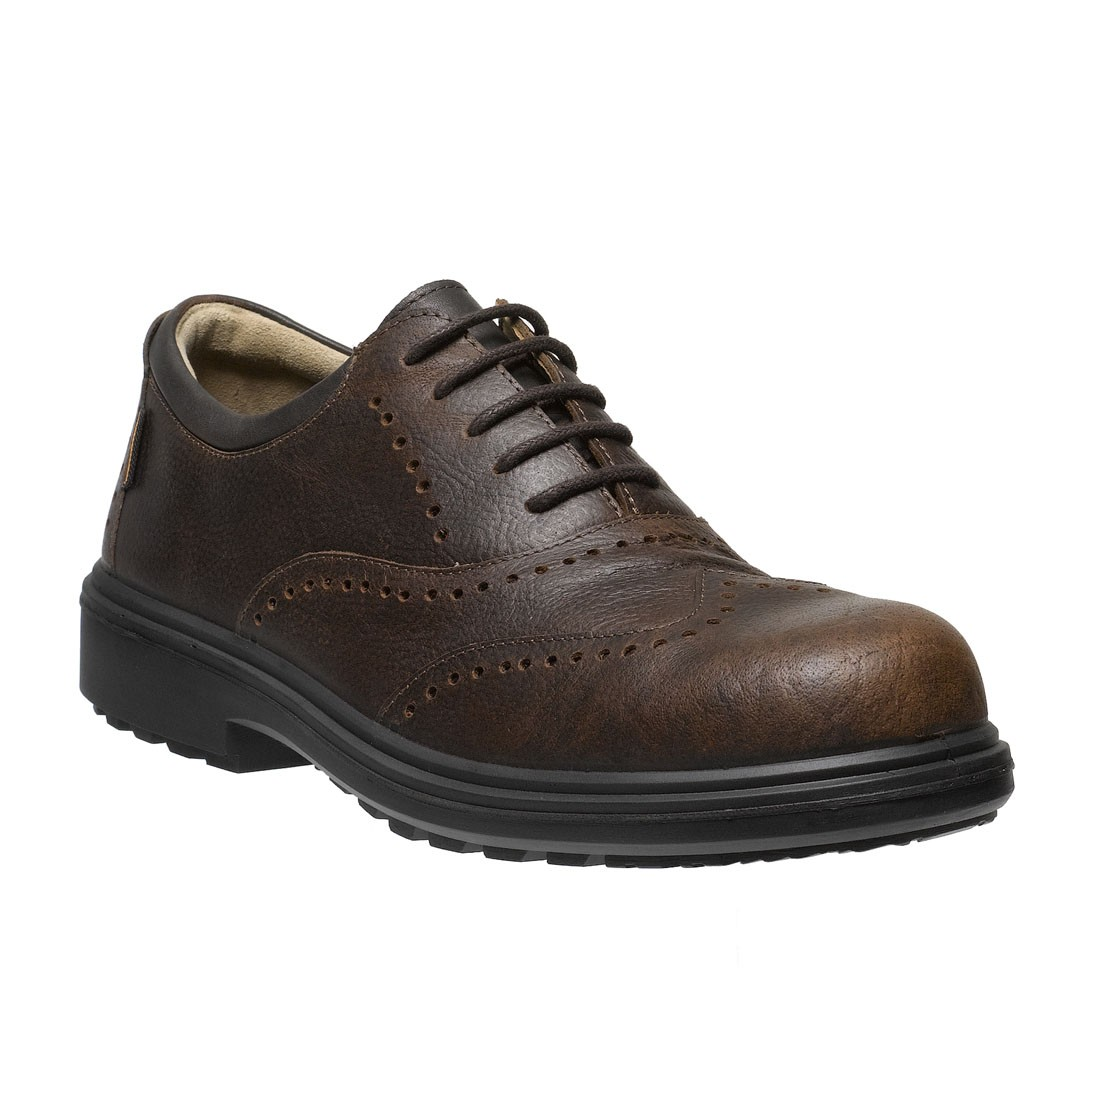 Brown Brogue Safety Shoes